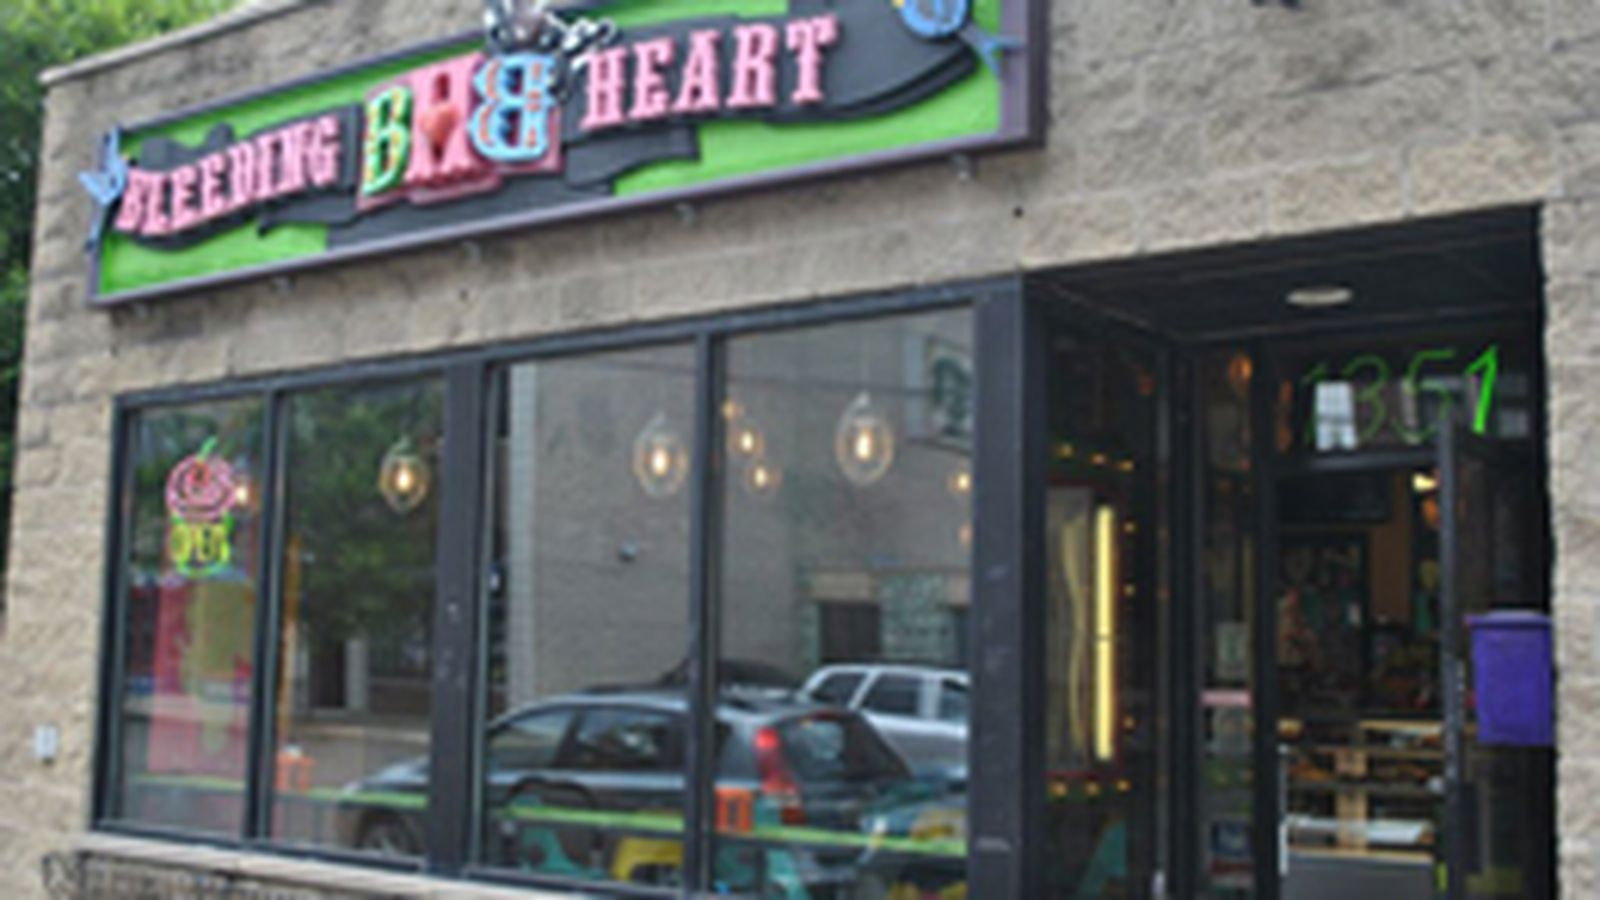 Craigslist Twin Cities >> Is Bleeding Heart Bakery Going Out of Business? - Eater ...